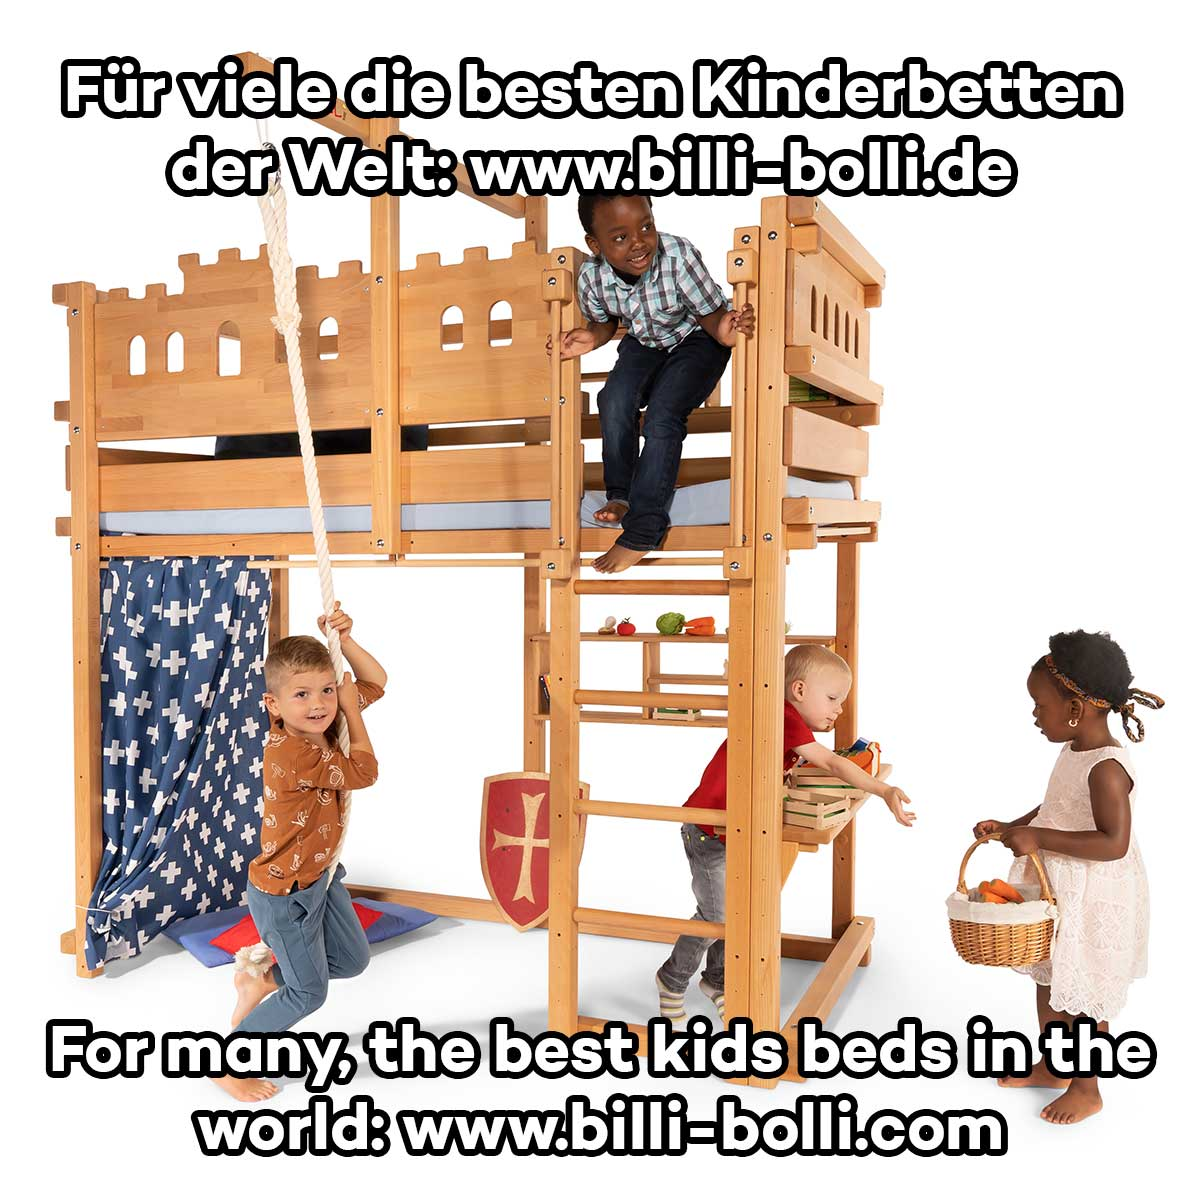 hochbett mitwachsend billi bolli kinderm bel. Black Bedroom Furniture Sets. Home Design Ideas